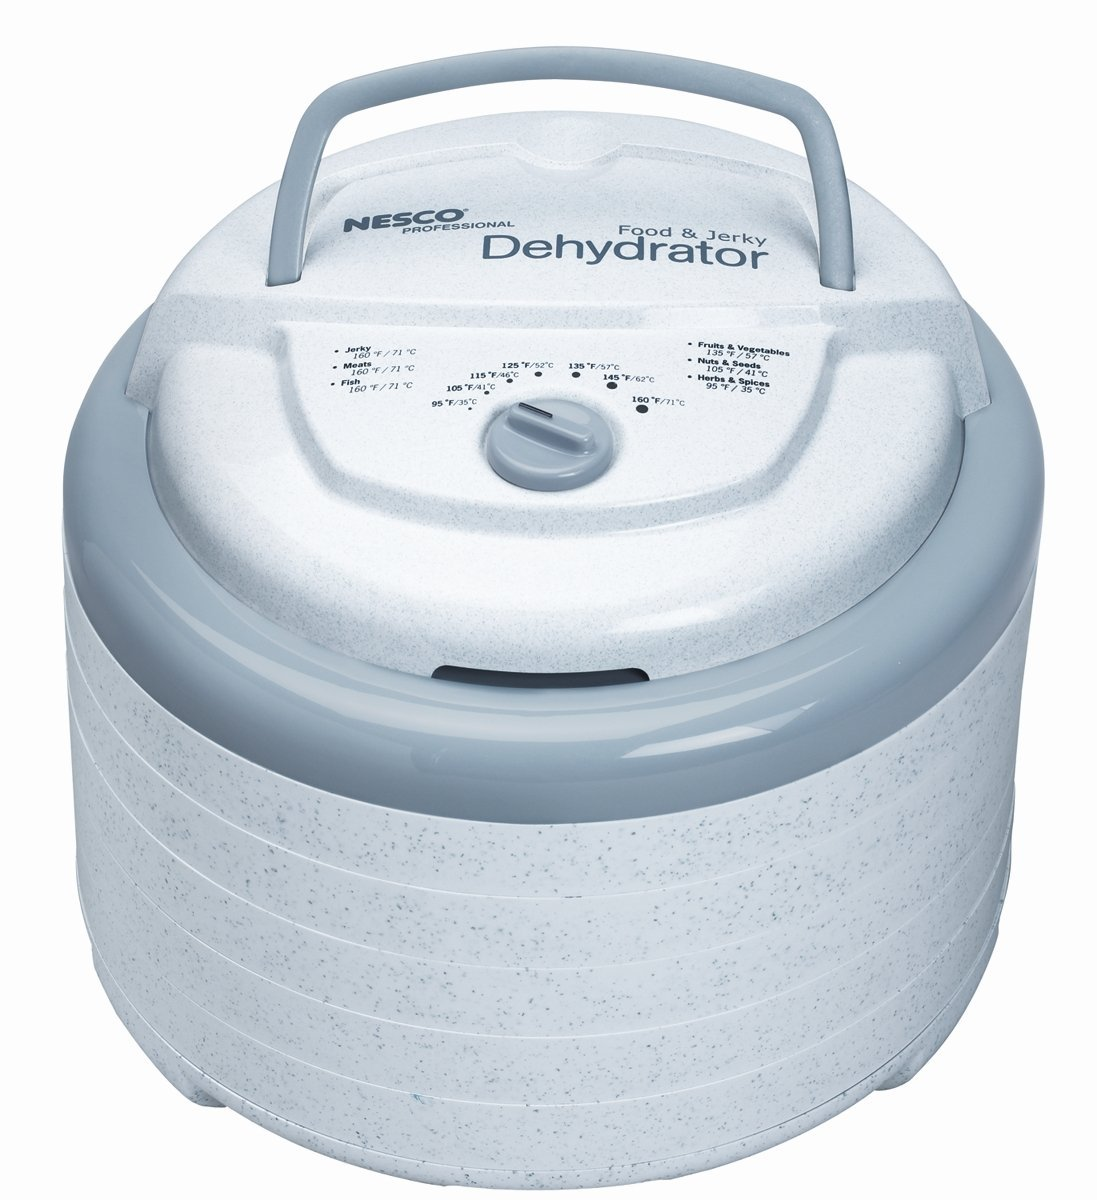 Nesco Snackmaster Pro Food Dehydrator FD-75A : Review